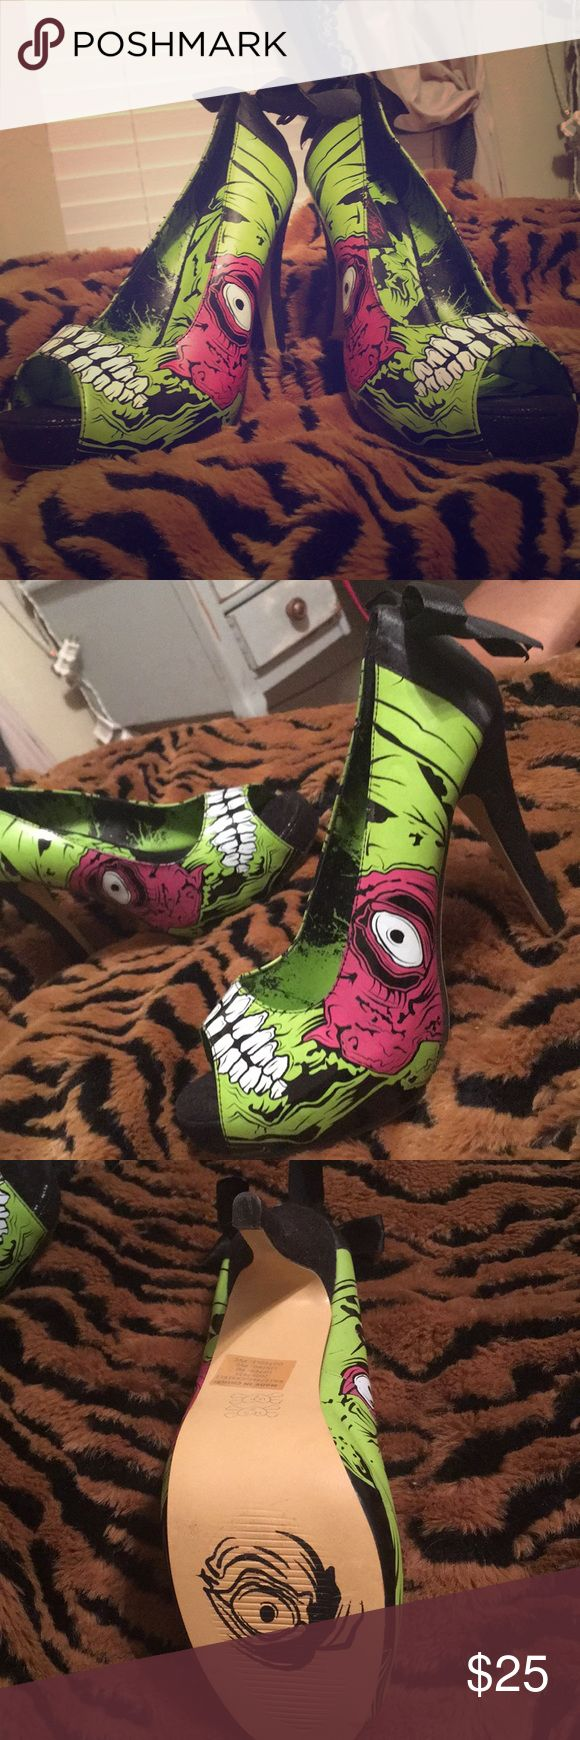 Iron Fist Zombie platform heels size 9 women's Iron Fist Zombie platform heels. They are a size 9 US. They have never been worn but have a small scuff from storage through the years. Made of PVC. About 3 inch tall heels. Iron Fist Shoes Heels